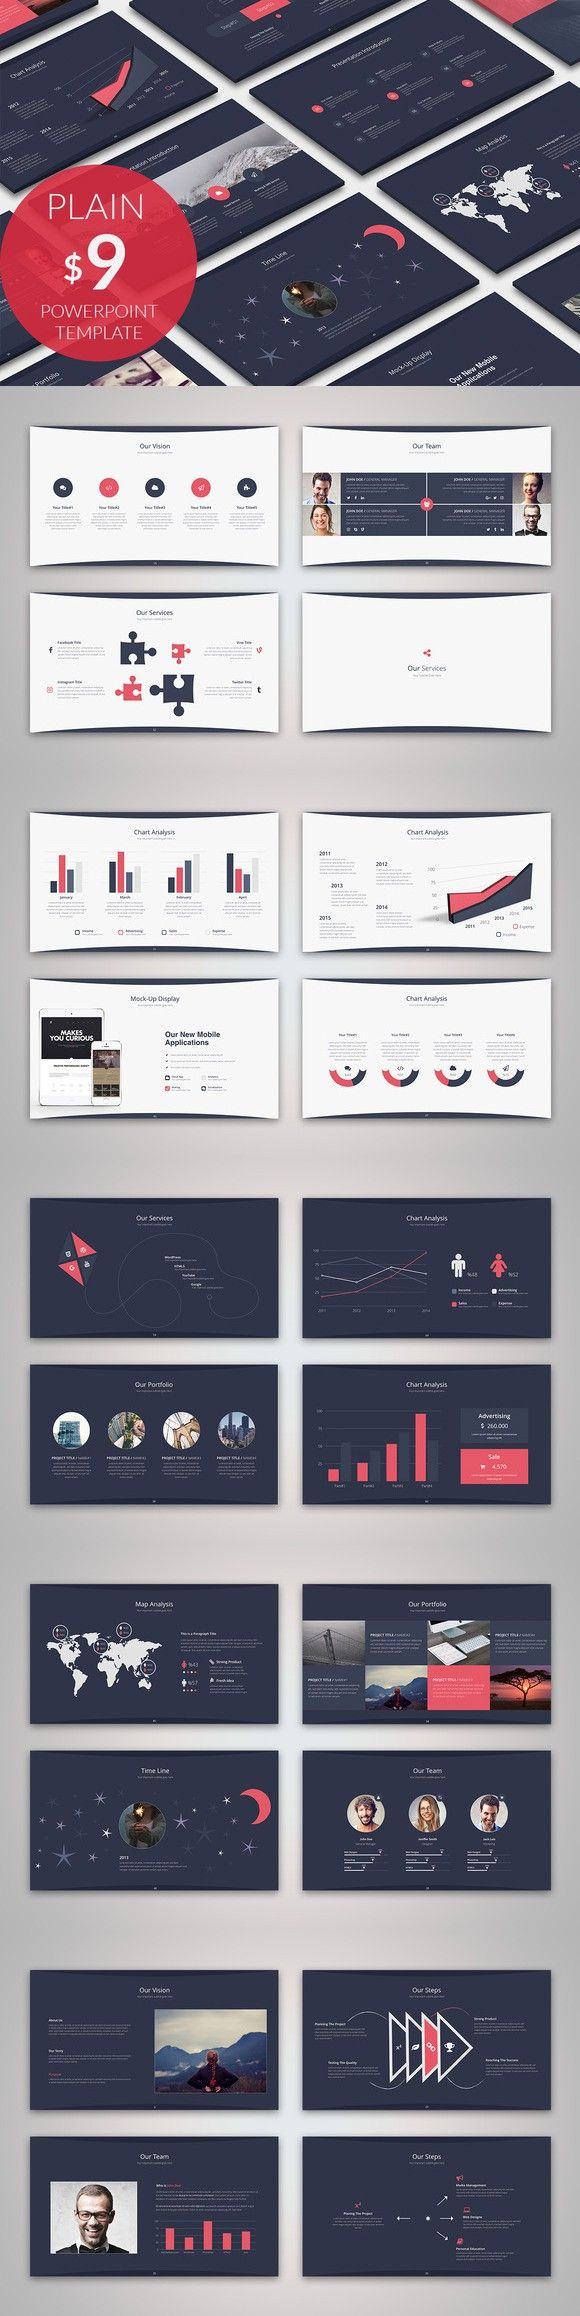 Best 25 business powerpoint templates ideas on pinterest plain business powerpoint template powerpoint templates 900 toneelgroepblik Gallery